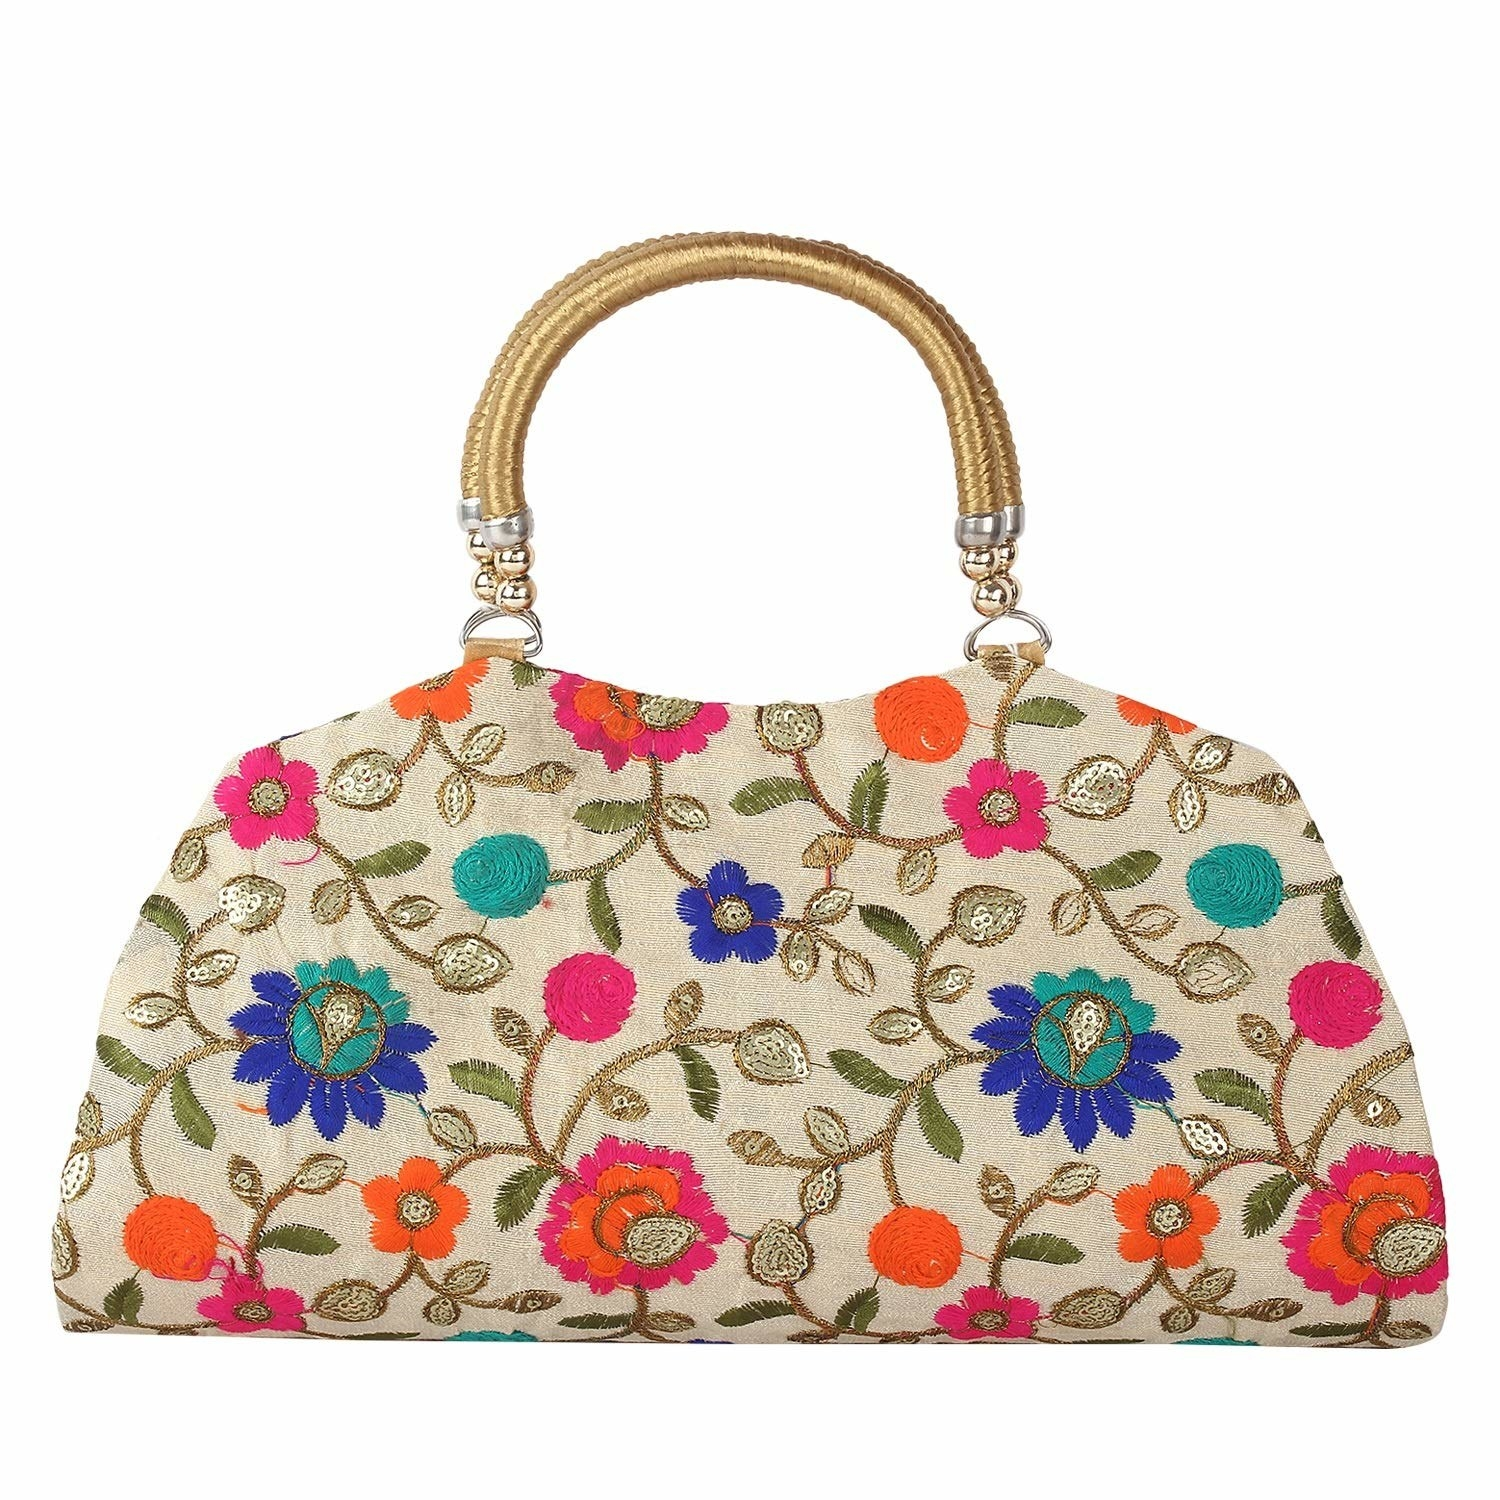 A white clutch with floral patterns on it